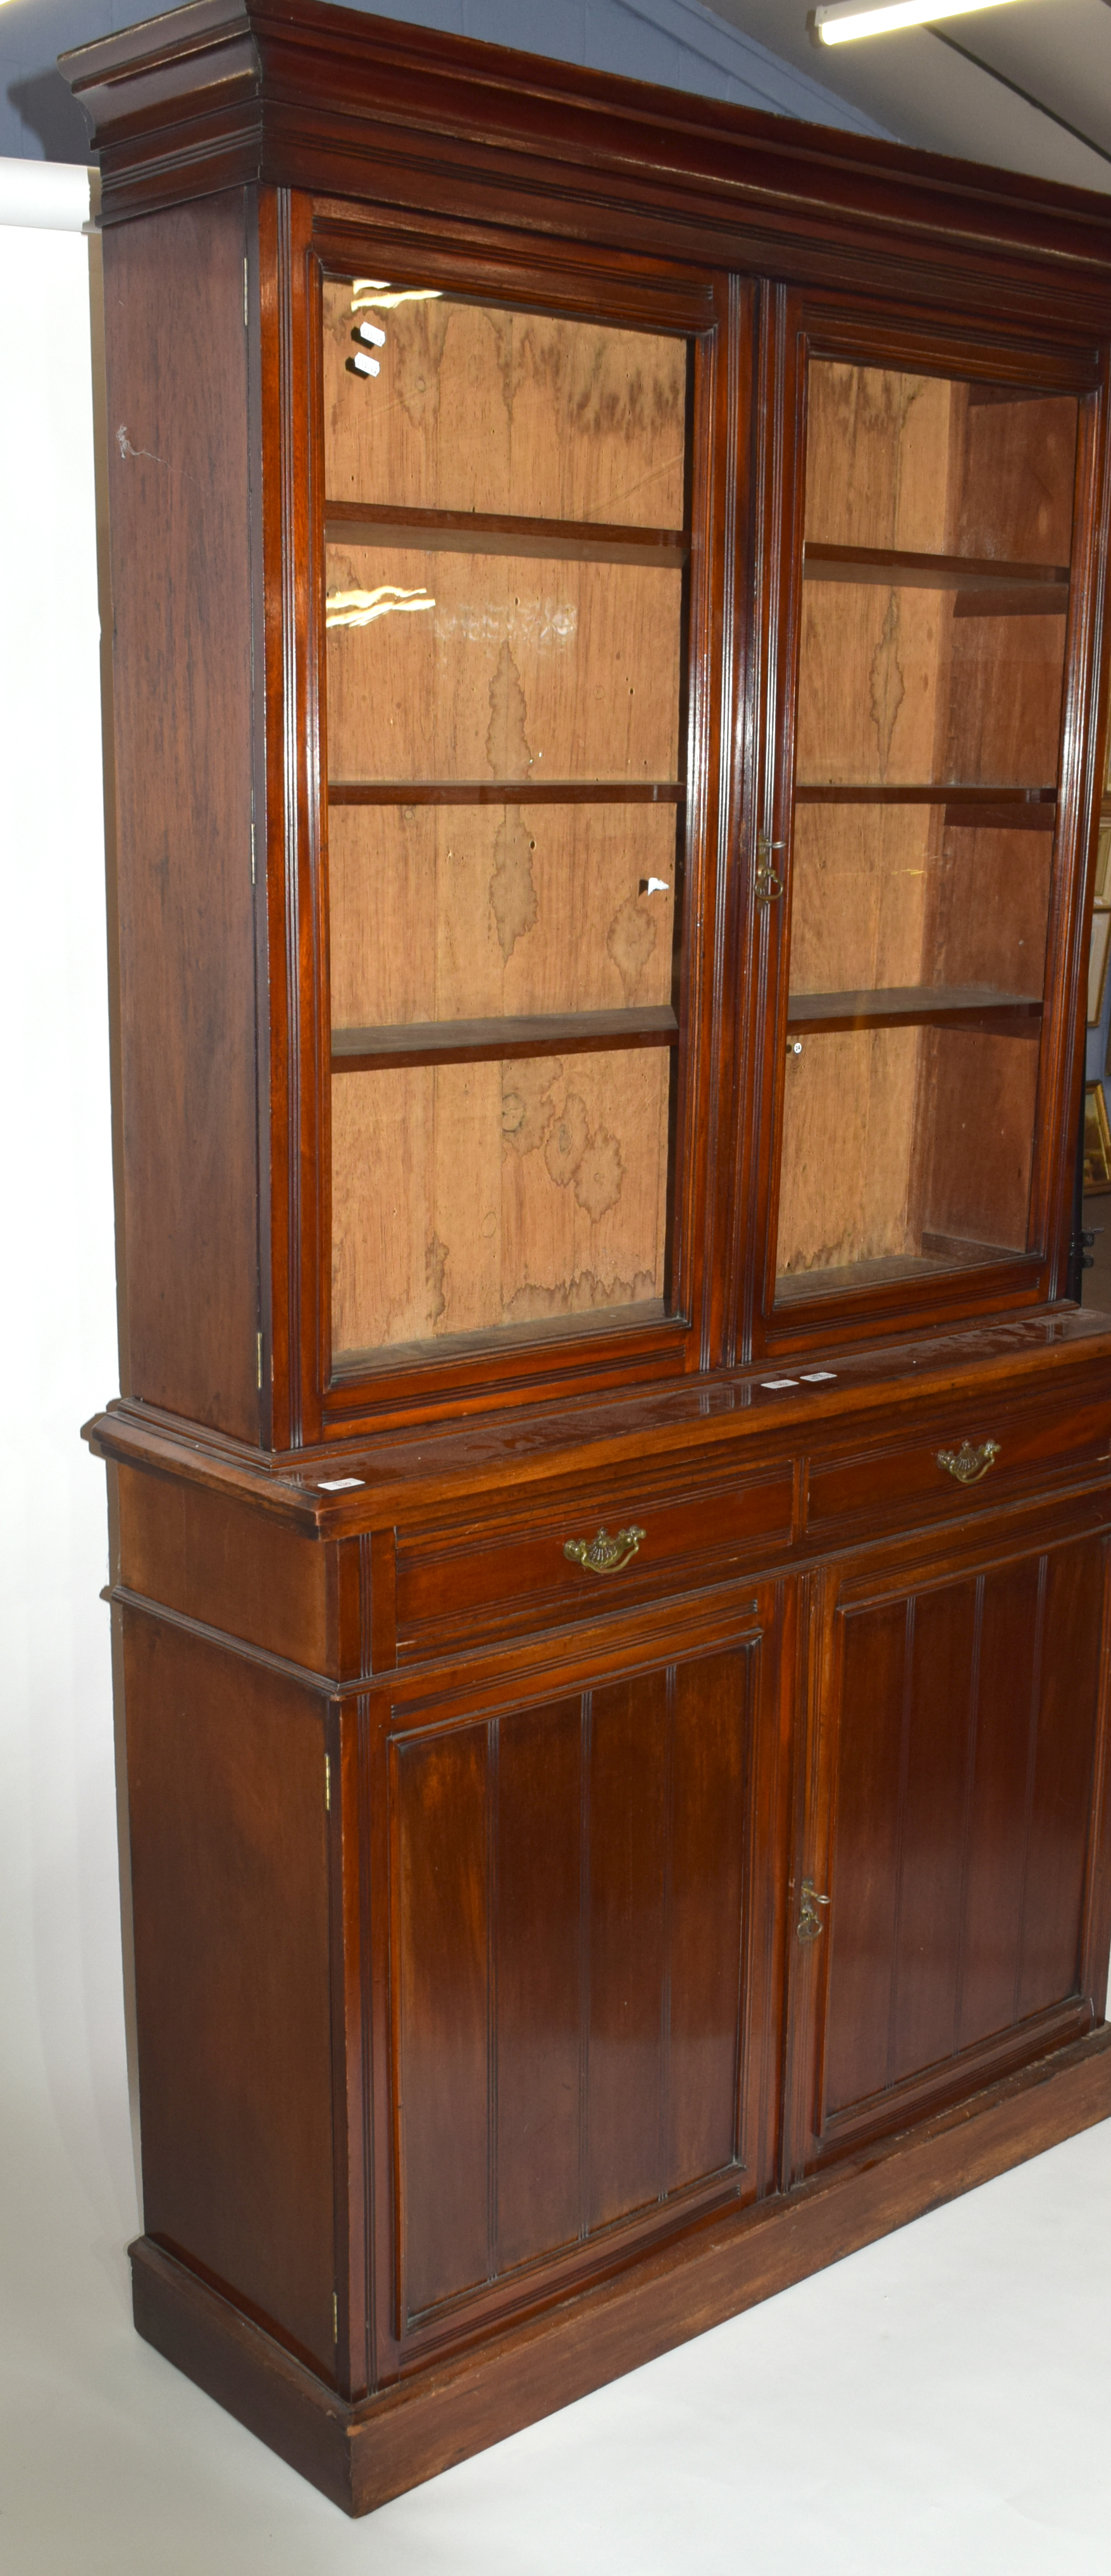 Full height mahogany side cabinet with glazed bookcase raised over double cupboard, width approx - Image 5 of 6